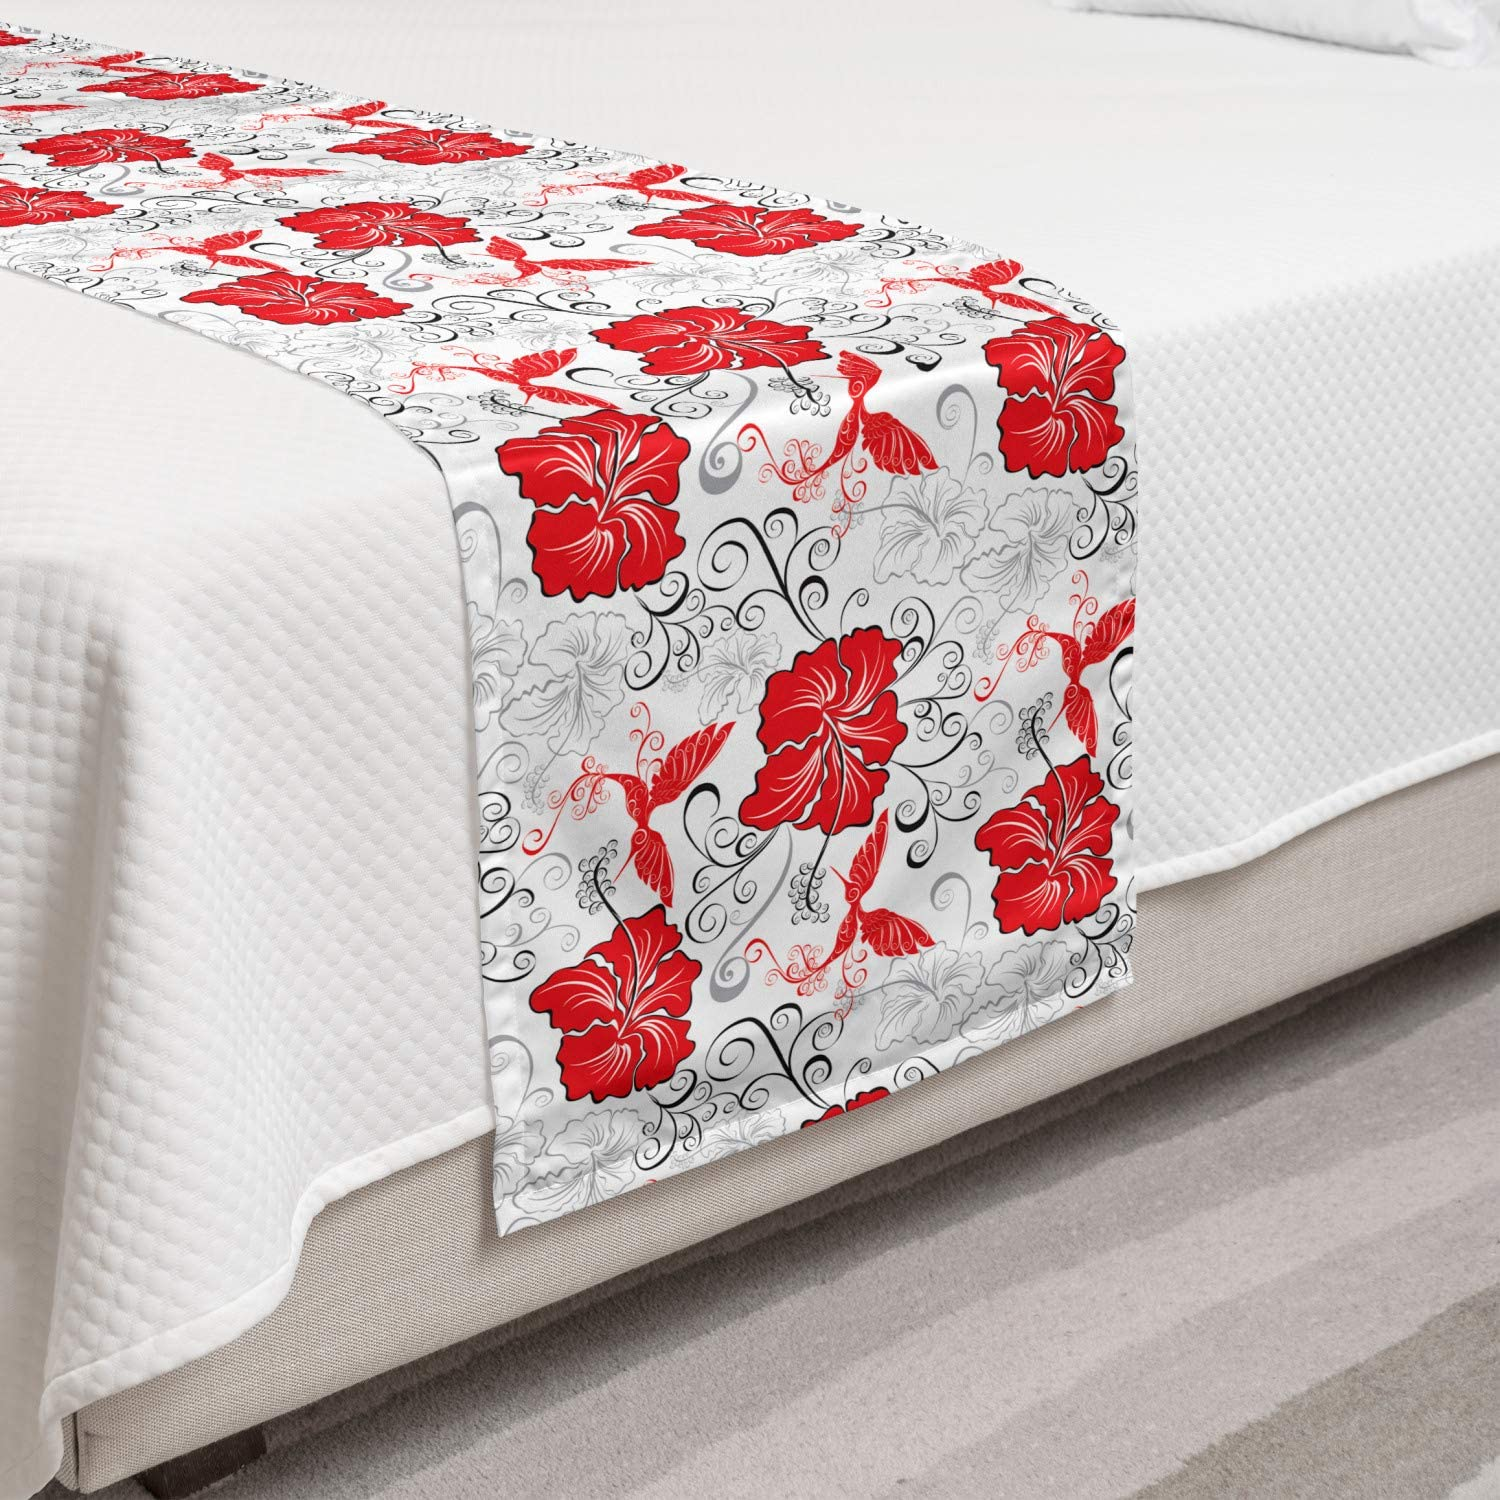 Lunarable Hawaiian Ranking Sale Special Price TOP14 Bed Runner Patterns Hibiscu with Flourishing